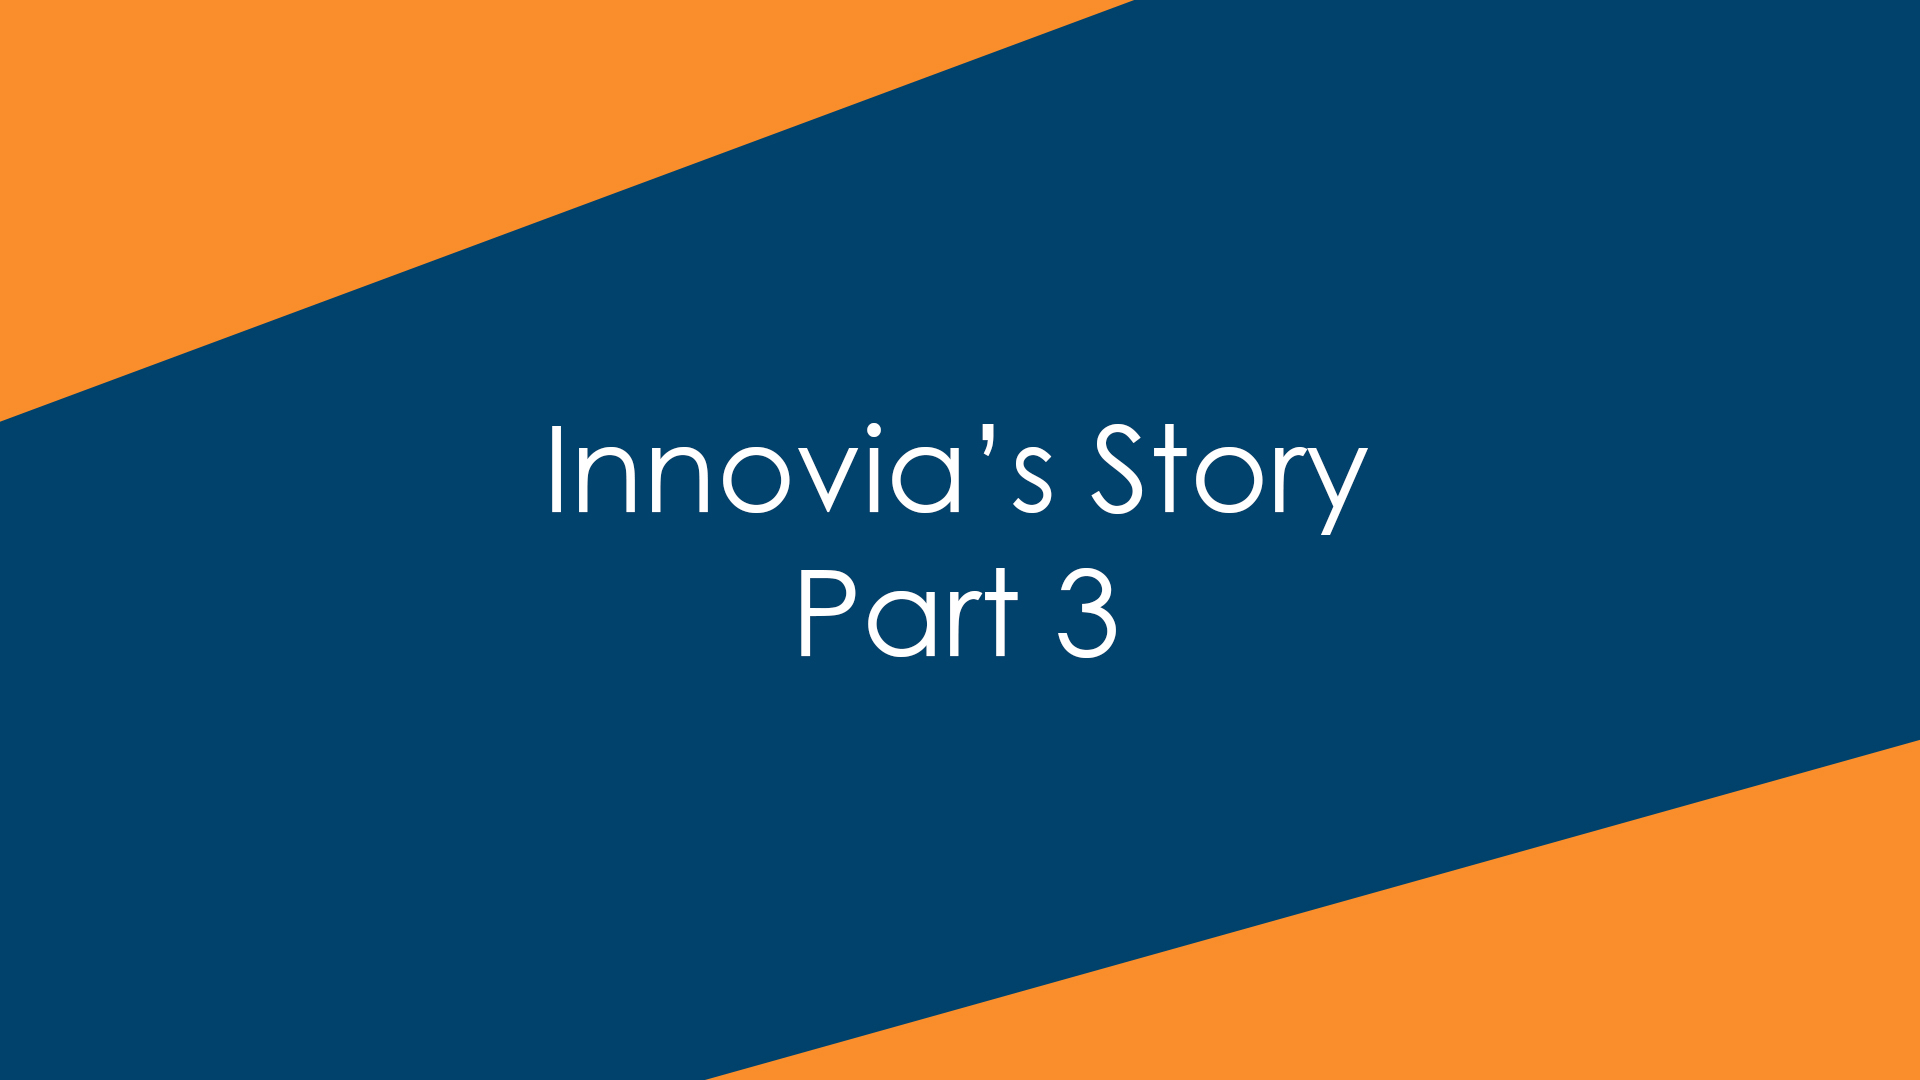 Innovia's Story, Part 3: Becoming Innovia and Leading on the Cloud